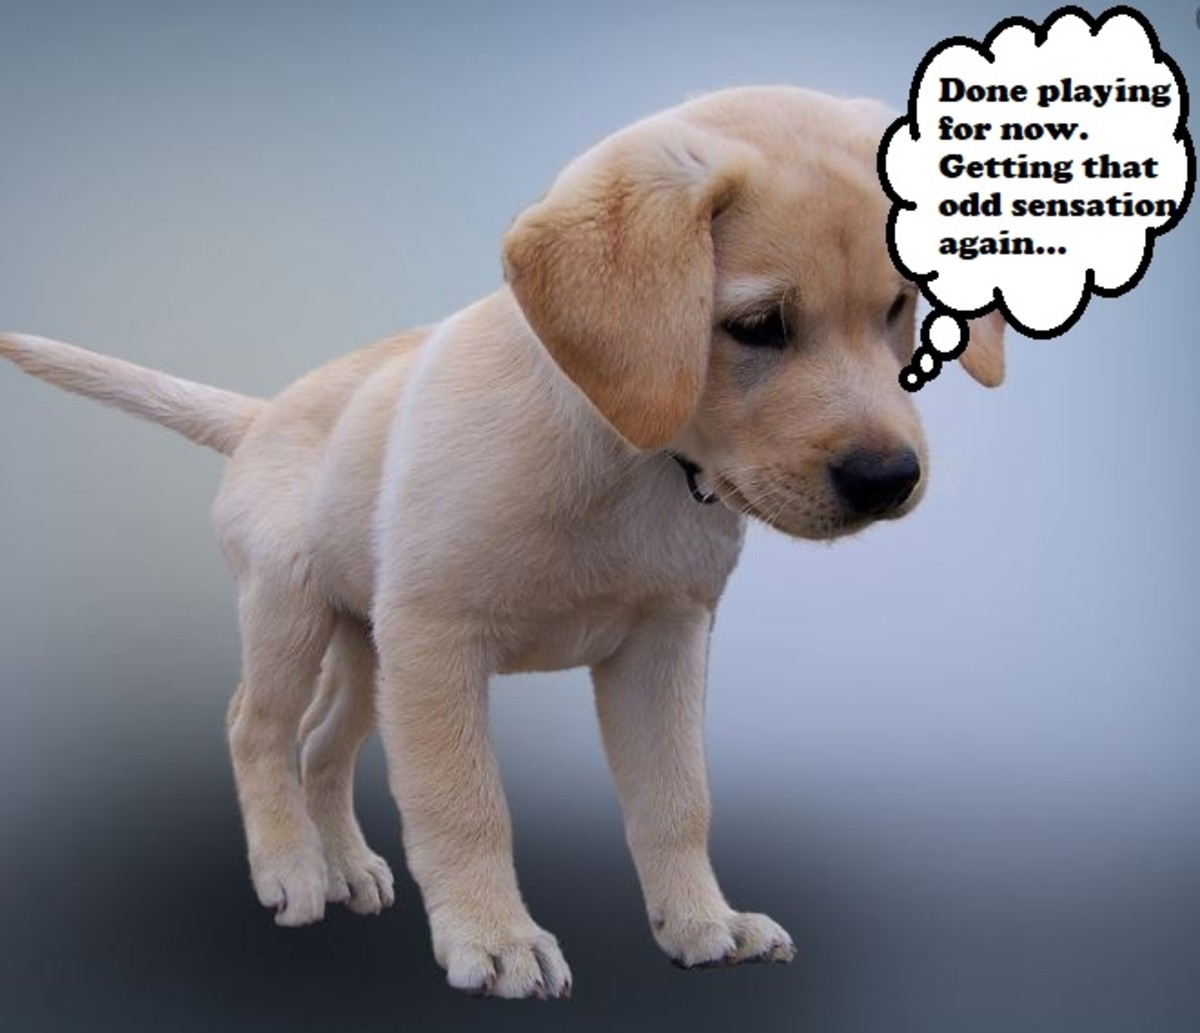 Puppies will abruptly stop an activity when they feel the urge to go.